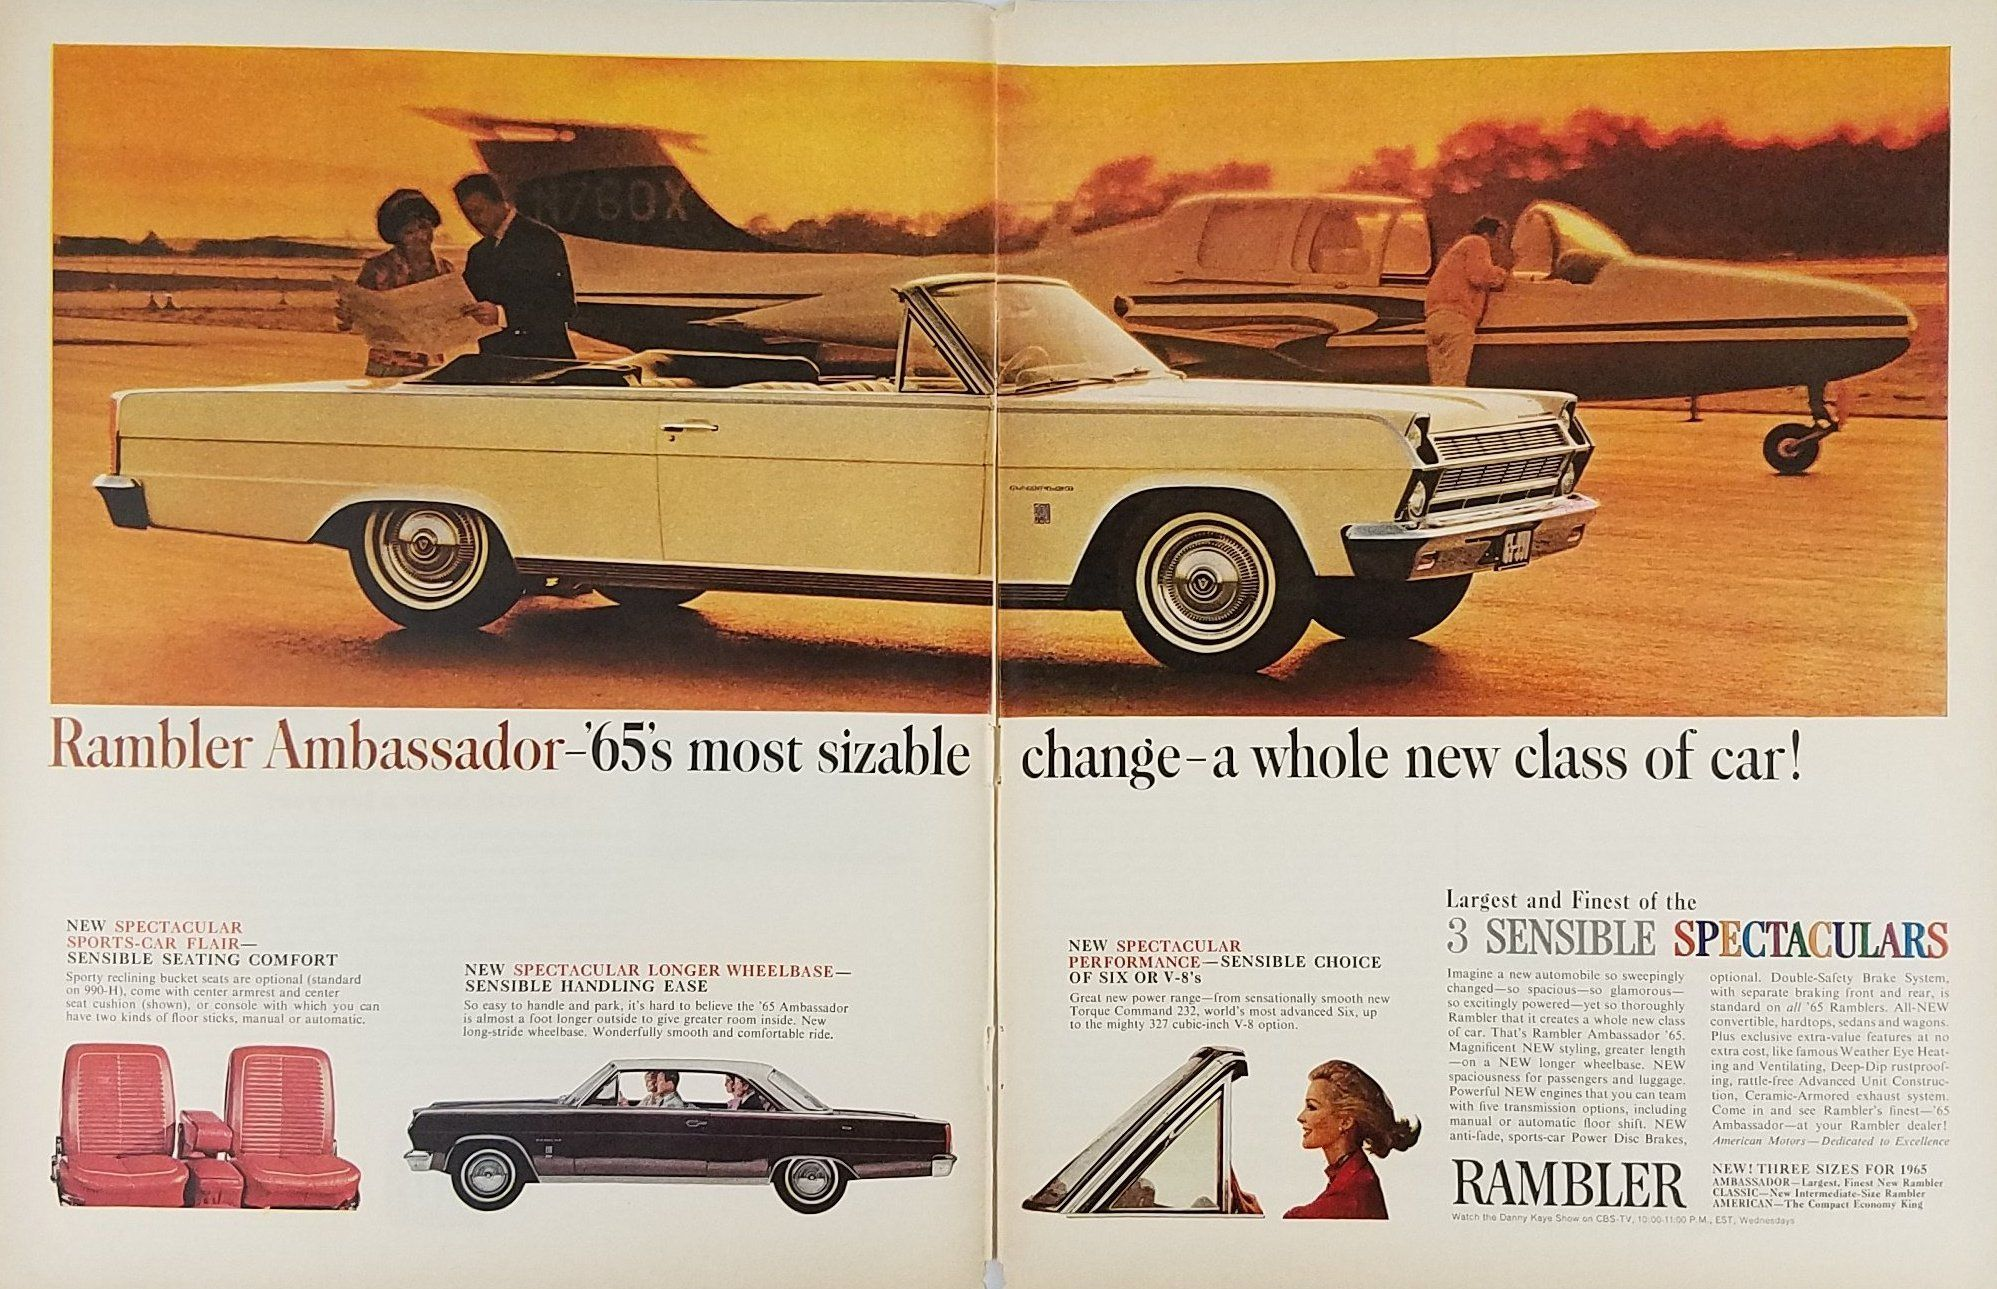 1965 Rambler Ambassador Vintage Ad Convertible Plane Couple Reading Con Imagenes Sensible